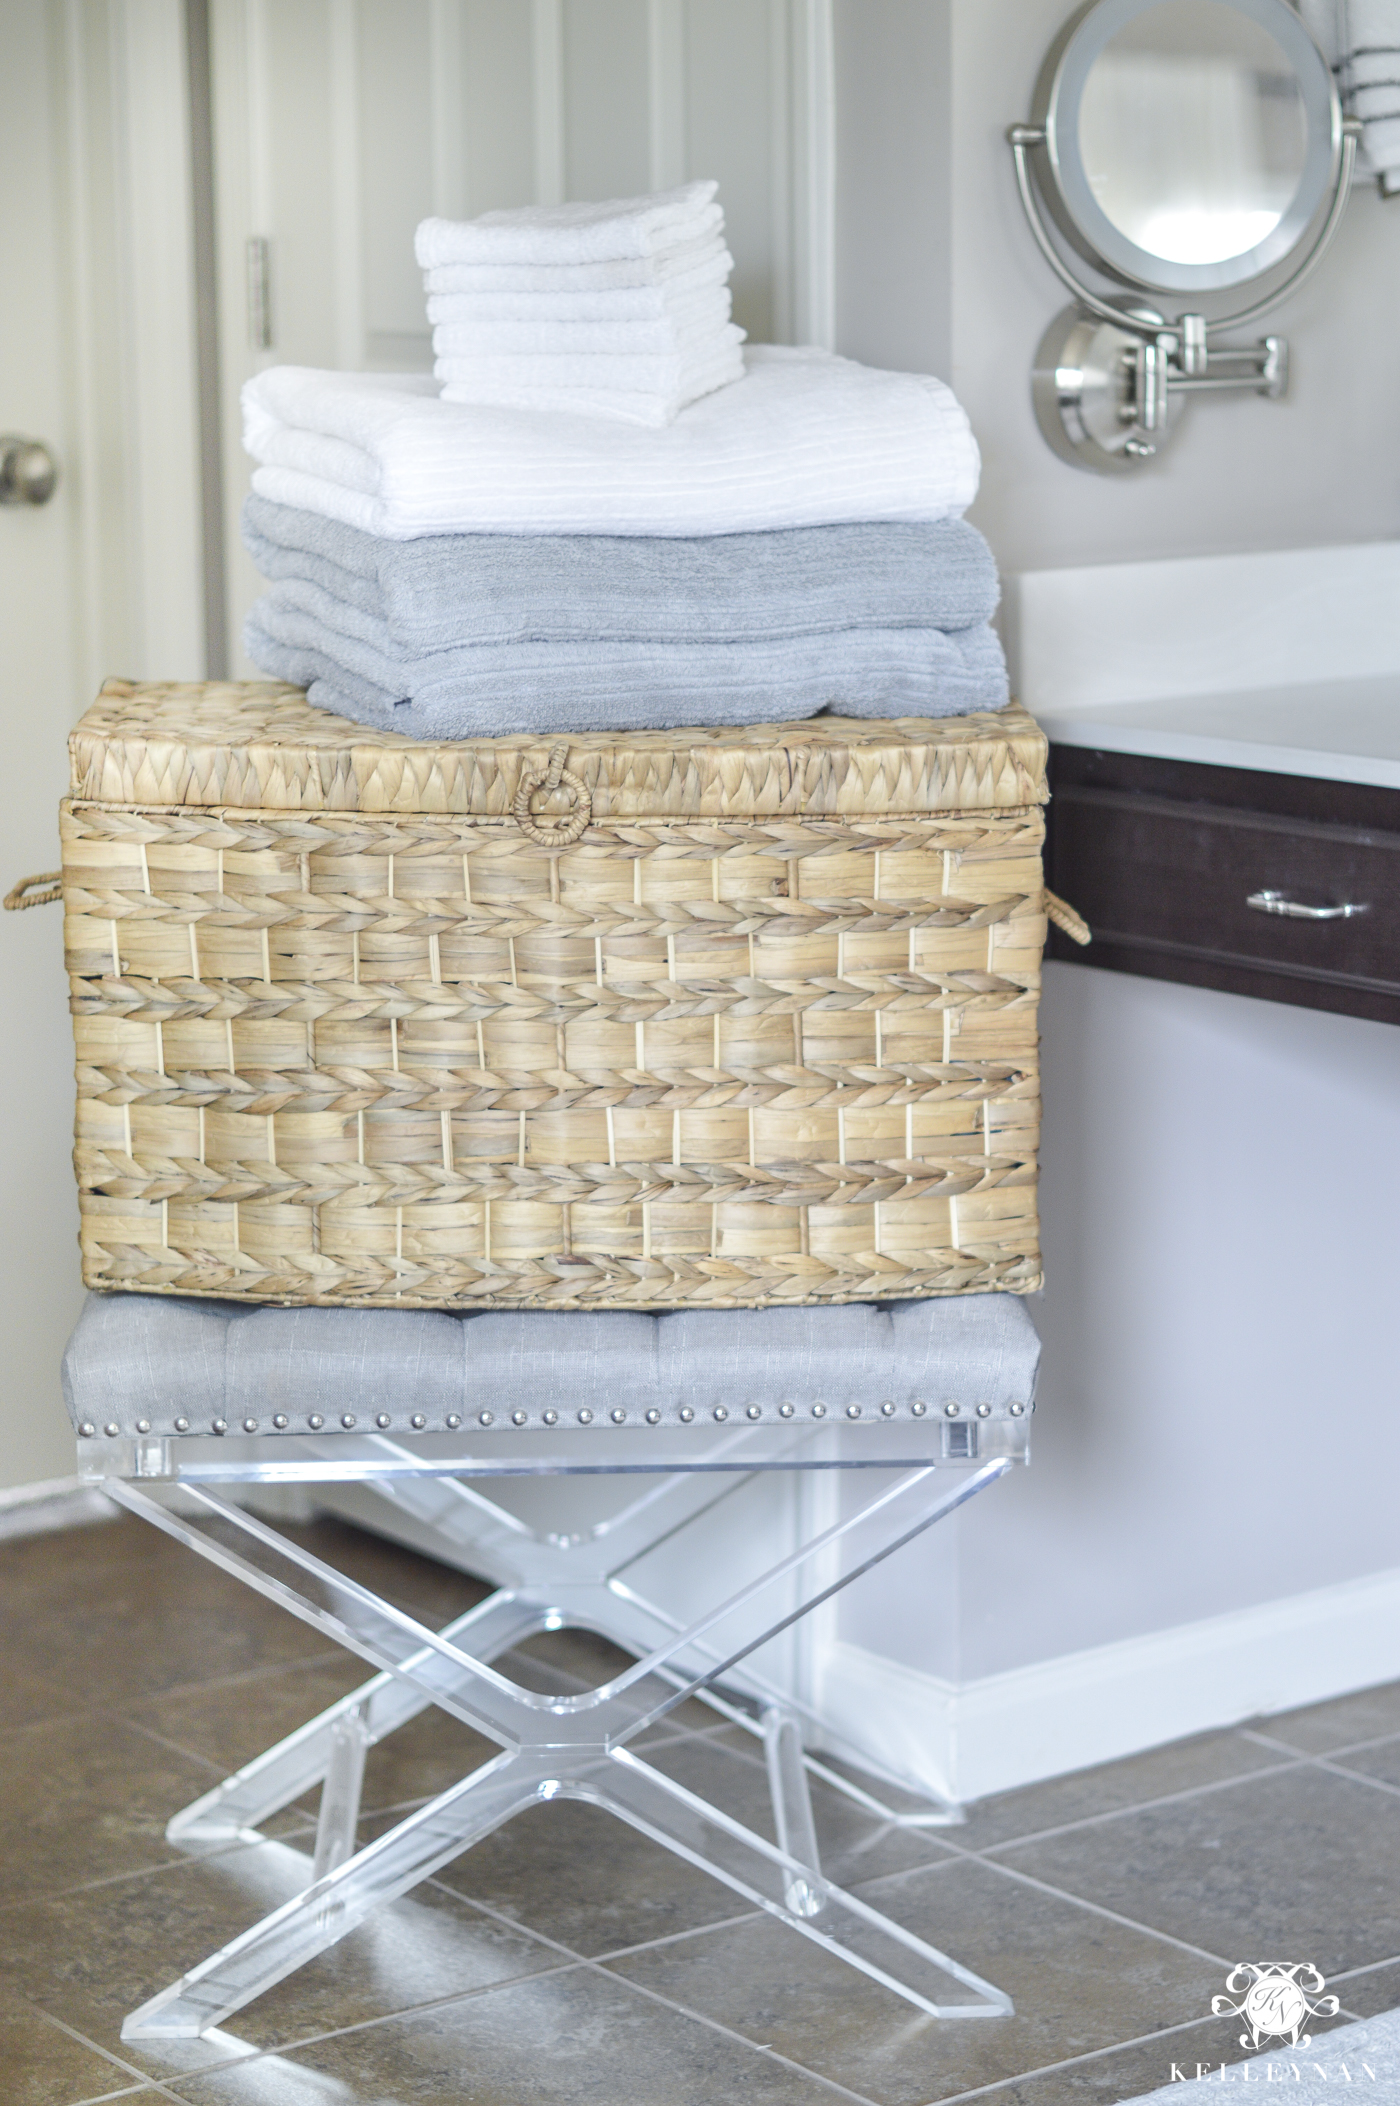 By Devoting A Little Time One Afternoon, I Easily Created An Organized  Bathroom Linen Closet Anyone Can Have.